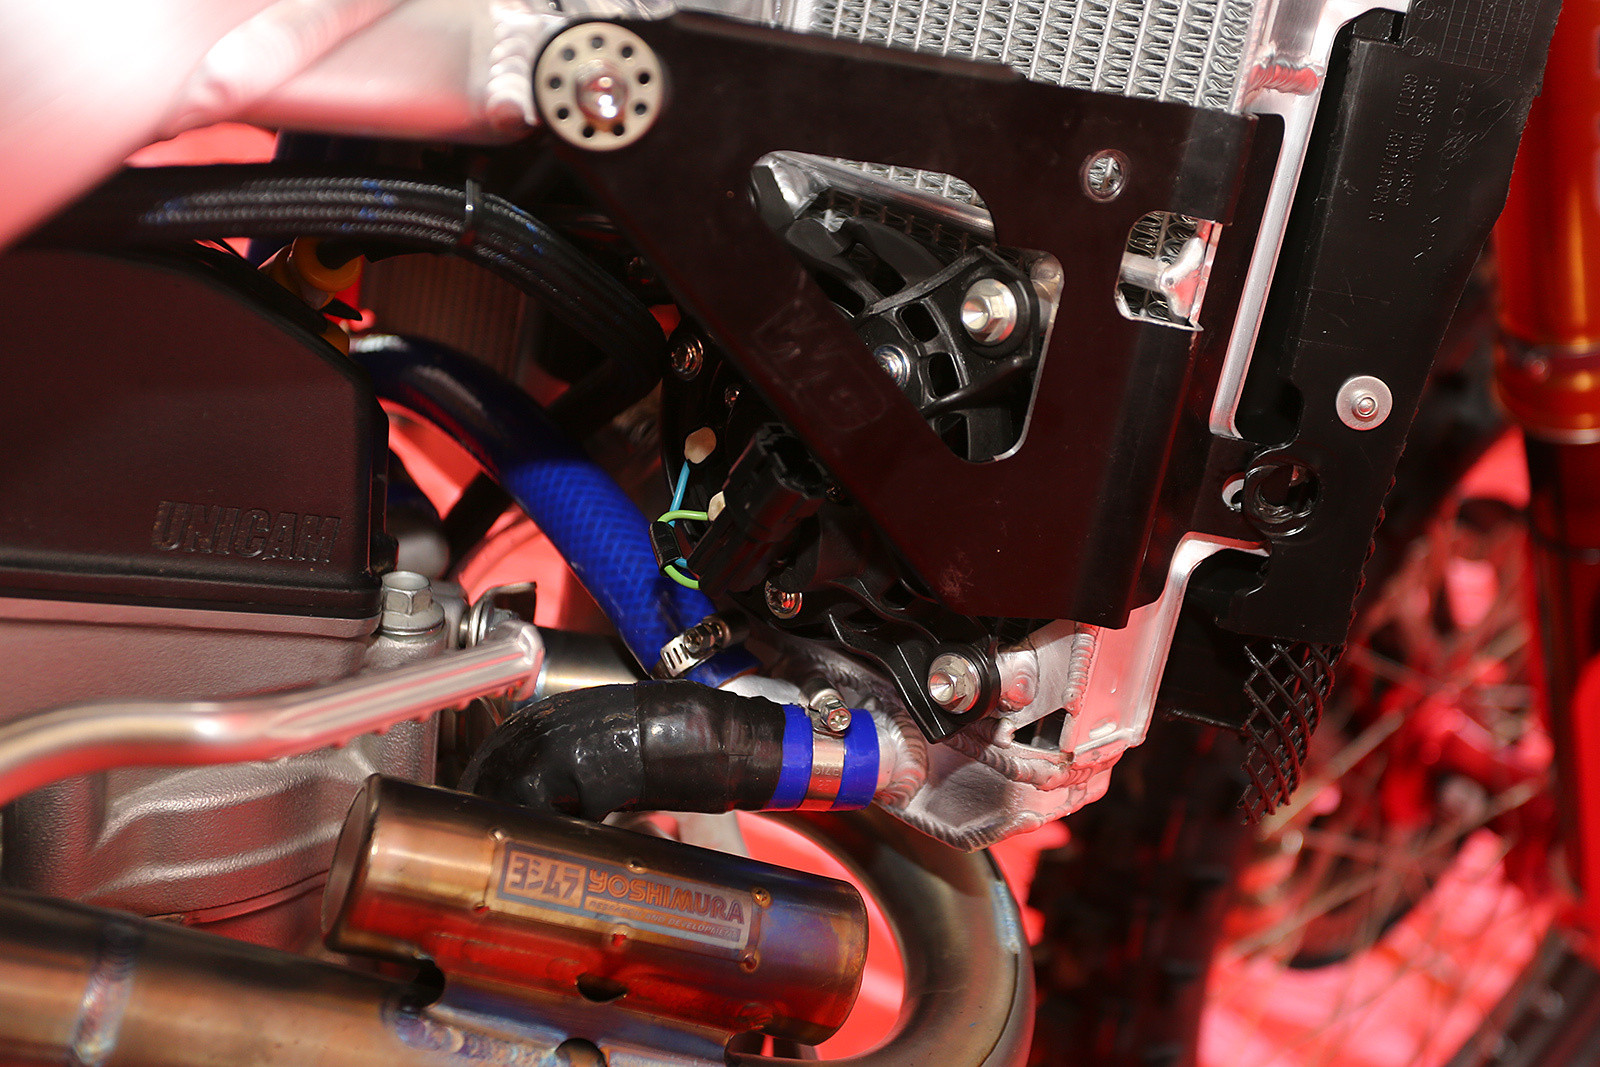 The GEICO Hondas have been using cooling fans off and on since Hangtown, and they were definitely on for the extra heat and stress of Southwick. You can also spot a bit of extra insulation on the radiator hose to minimize the heat from the exhaust.